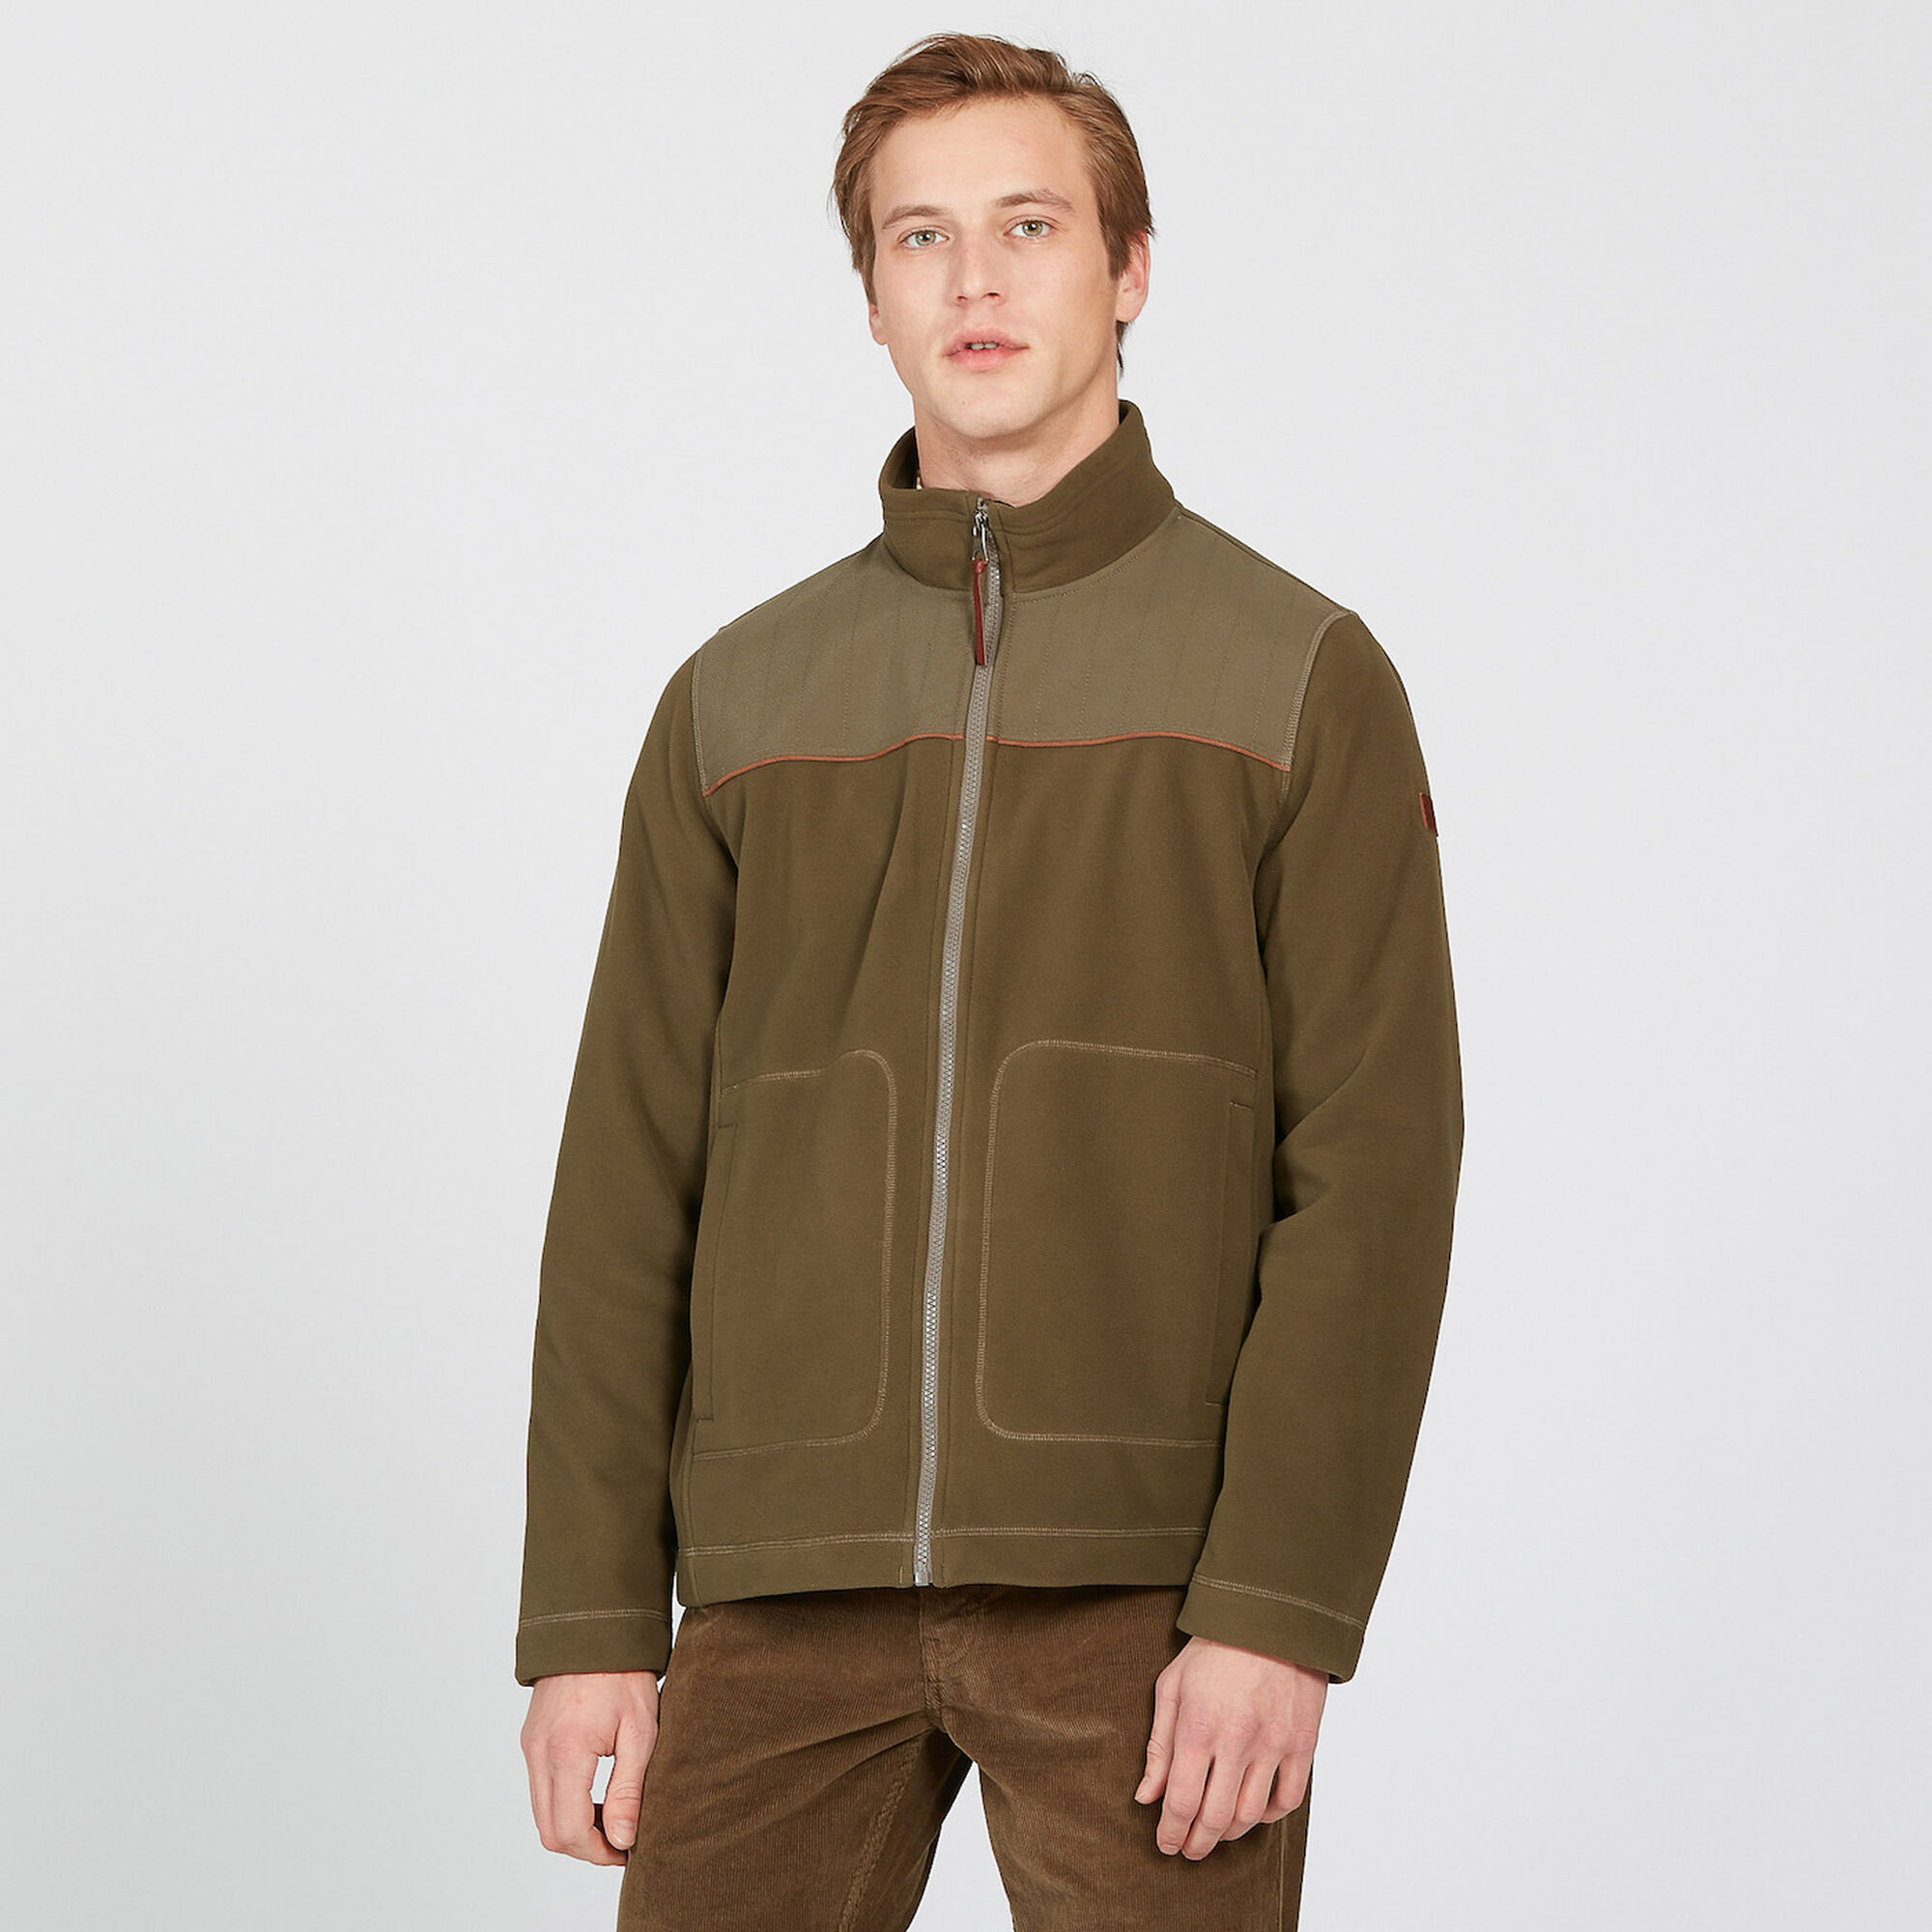 Polaire chasse Windstopper®